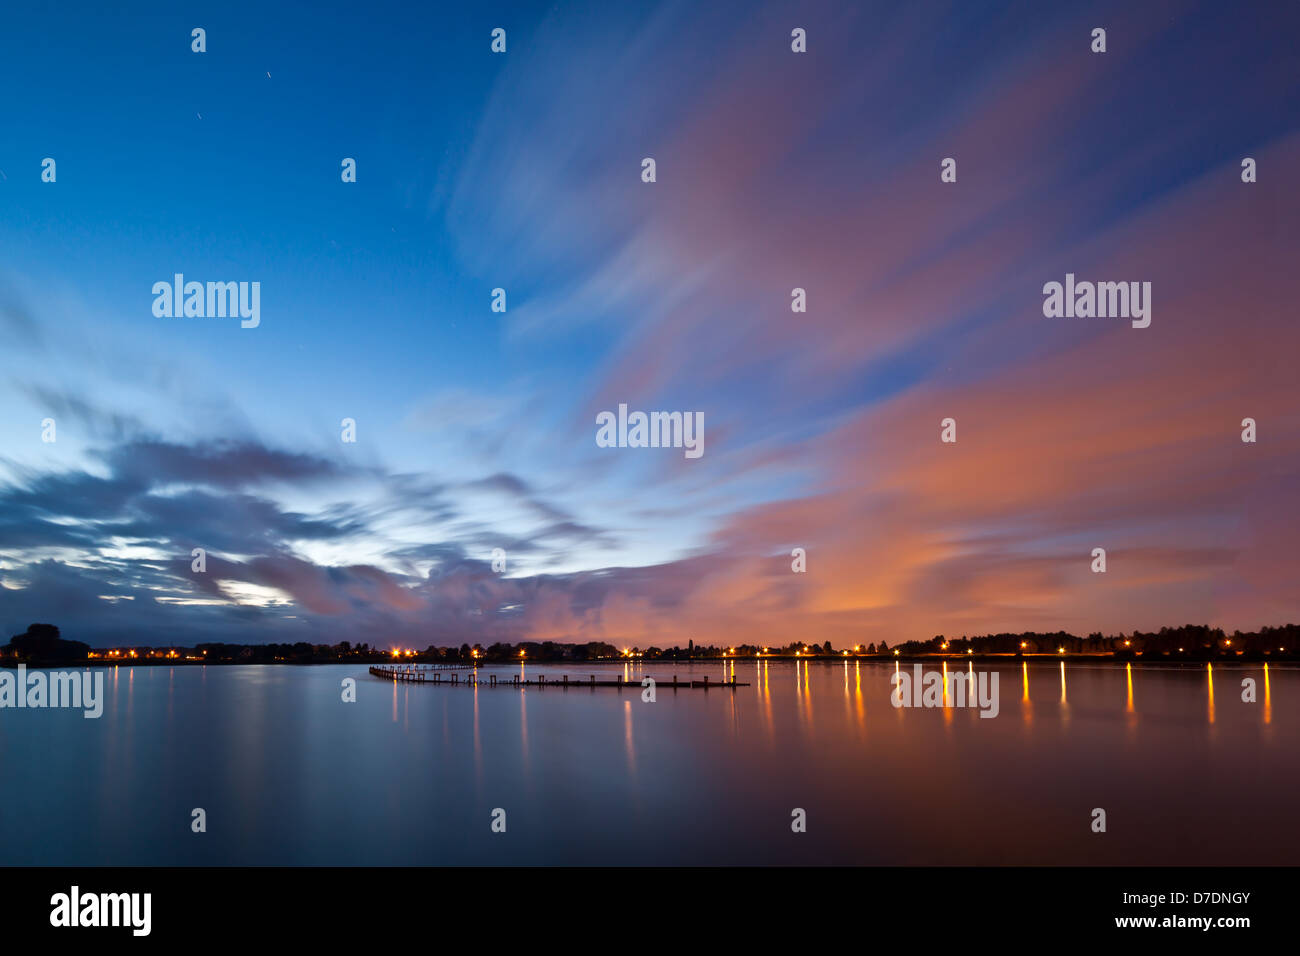 Impressive clouds above a blue lake at night - Stock Image